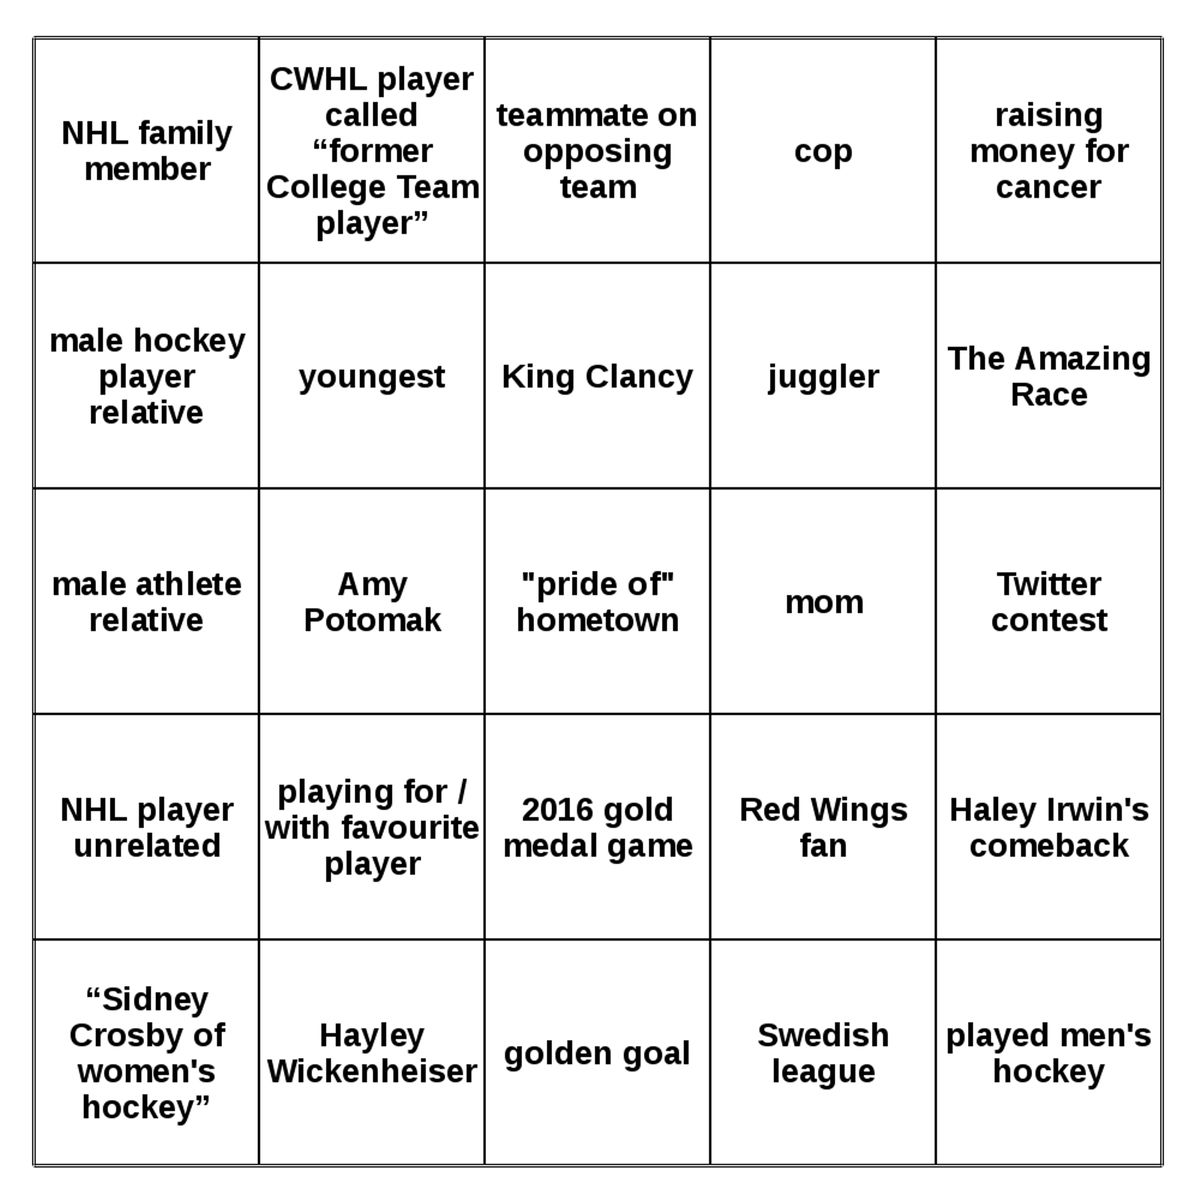 """Top row: NHL family member /  CWHL player called """"former College Team player"""" /  teammate on opposing team / cop /  raising money for cancer. Row 2: male hockey player relative / youngest / King Clancy / juggler / The Amazing Race. Row 3: male athlete rel"""